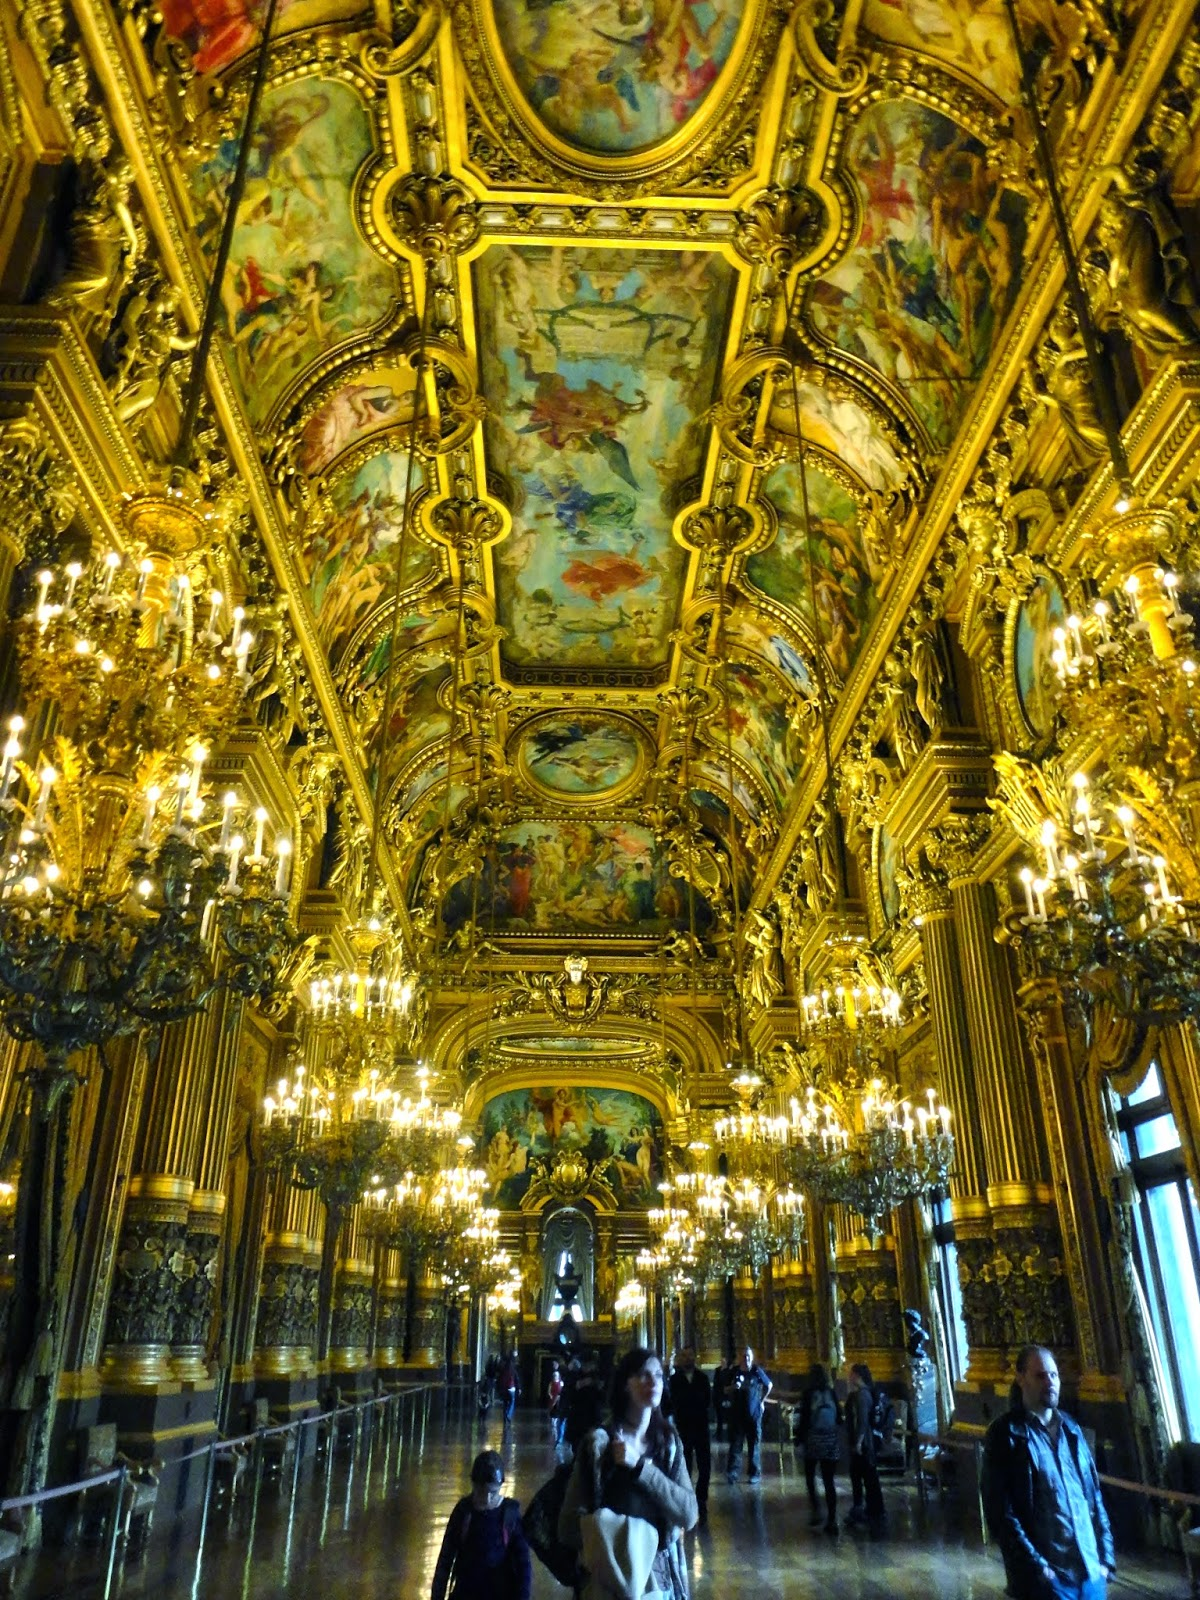 Interior of Opera Garnier, Paris